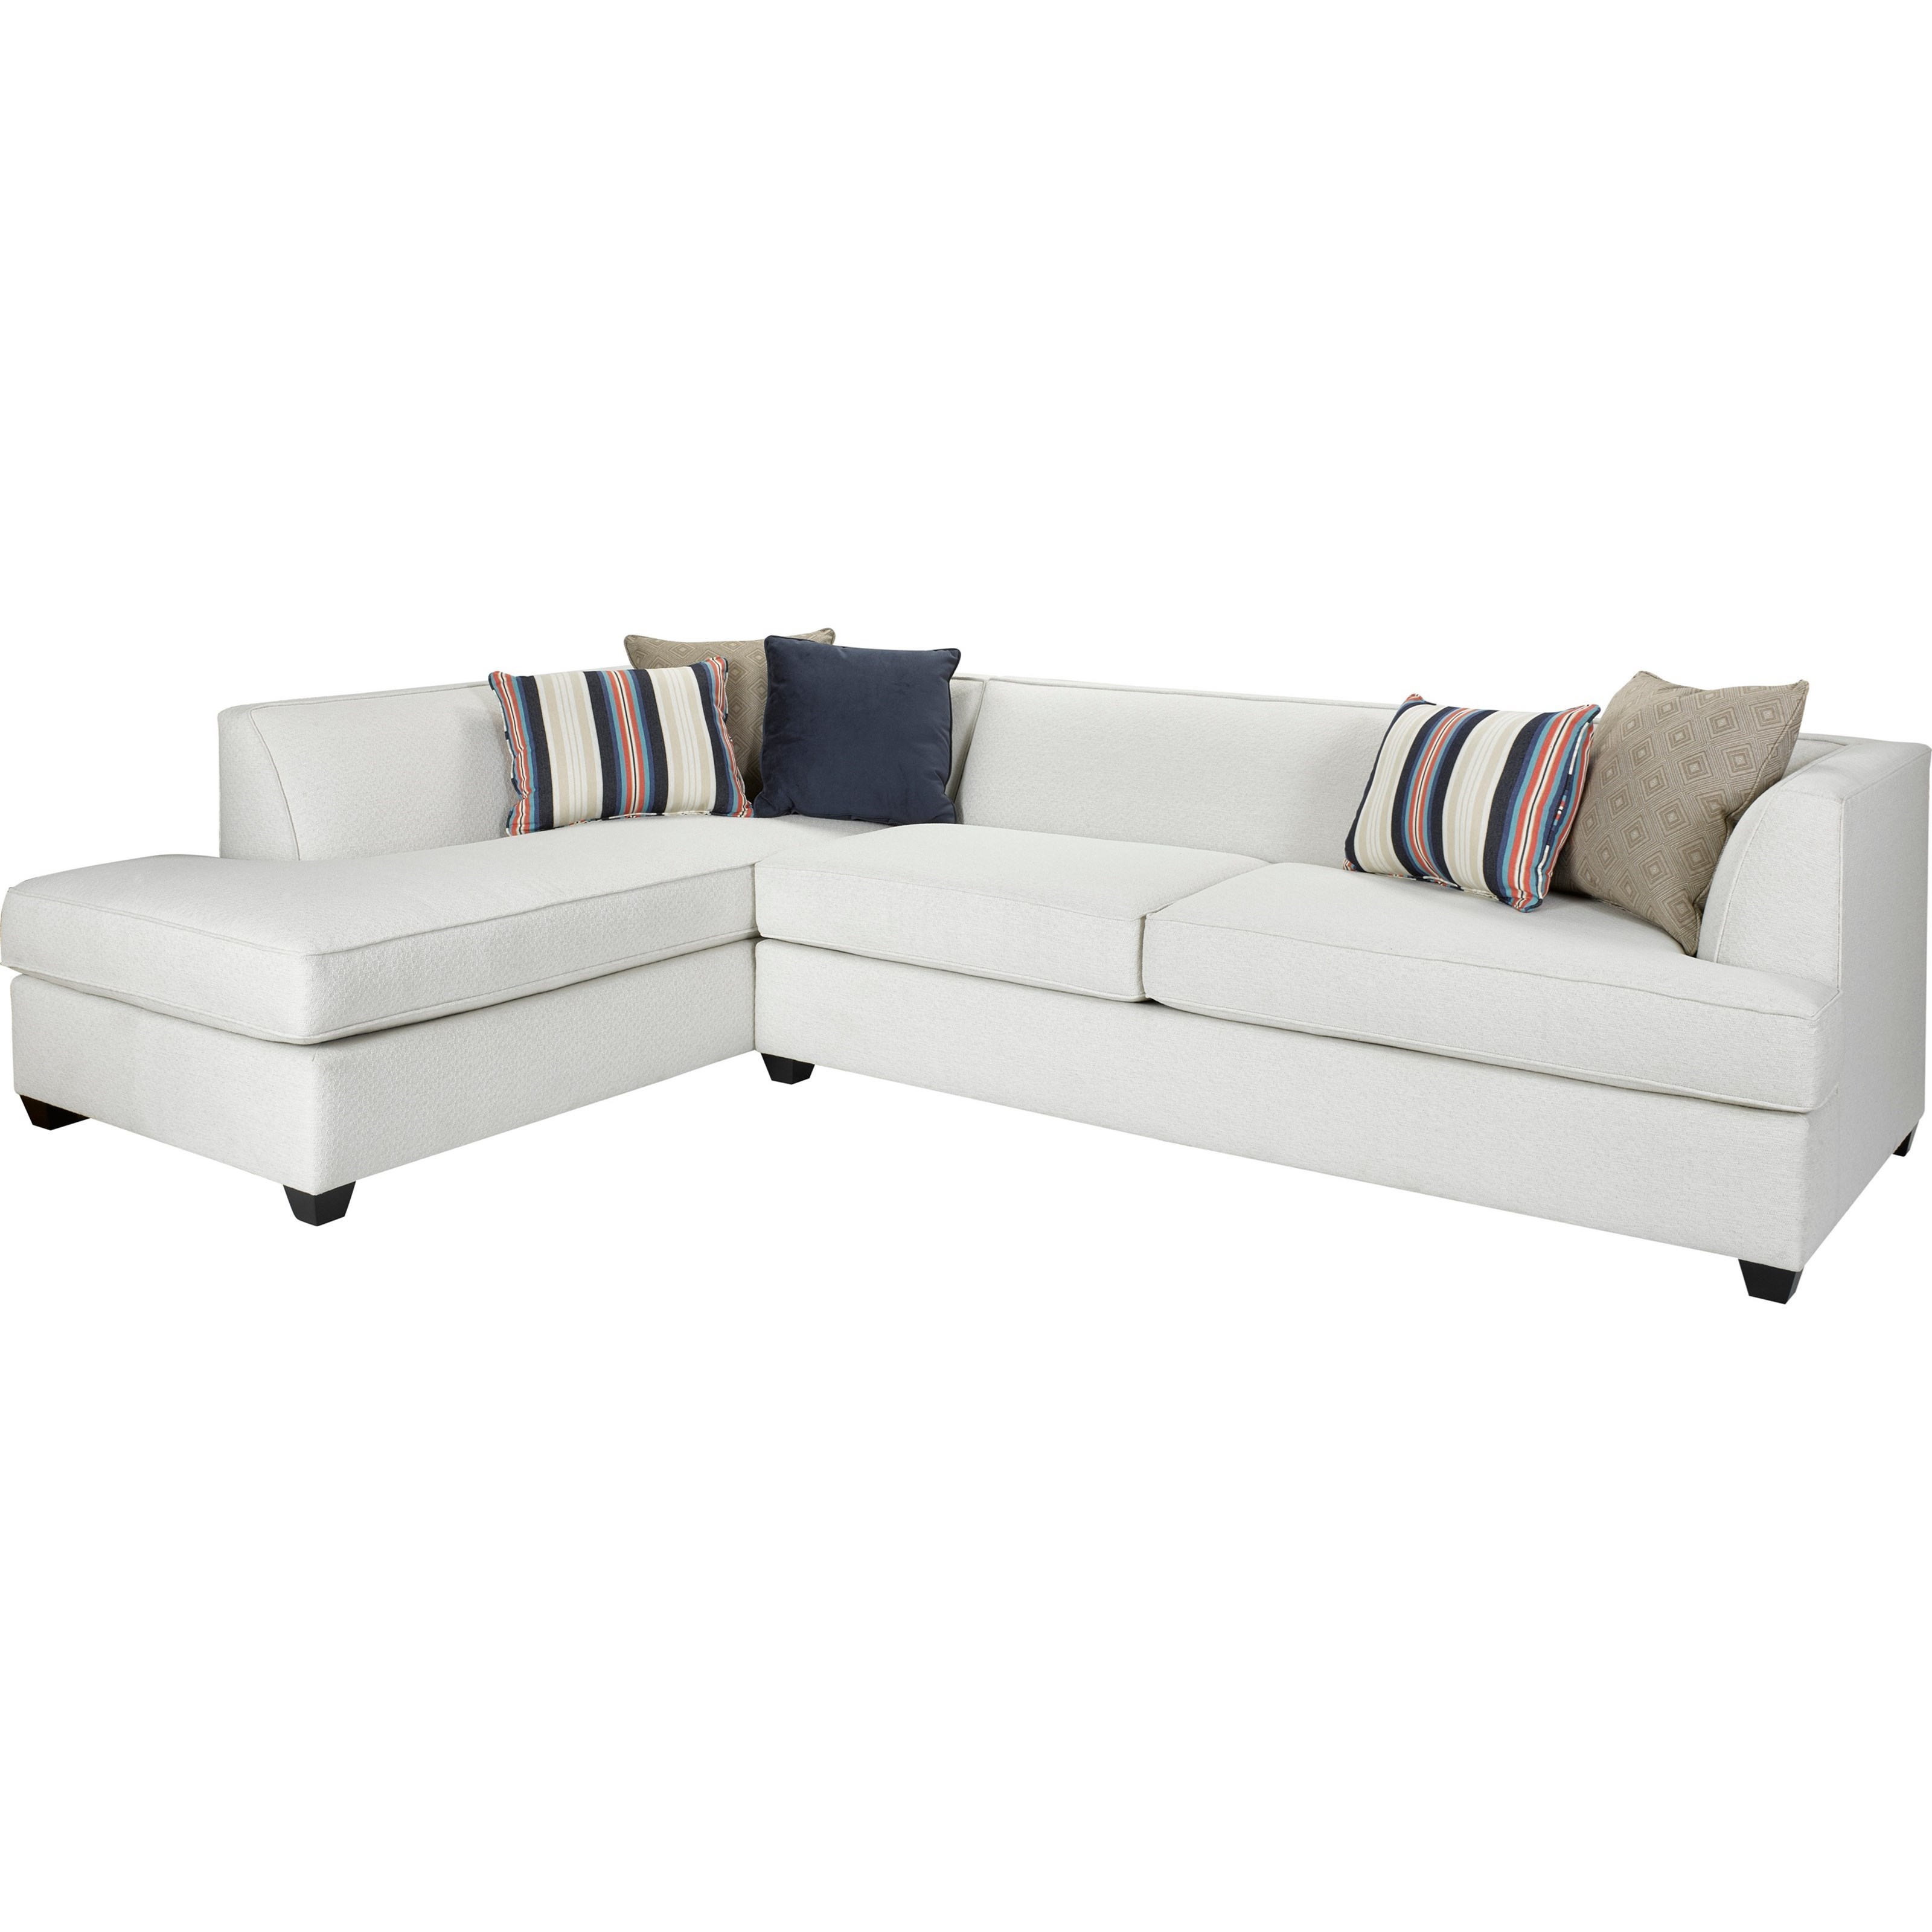 Broyhill Furniture Farida 2 Piece Sectional Sofa With LAF Chaise